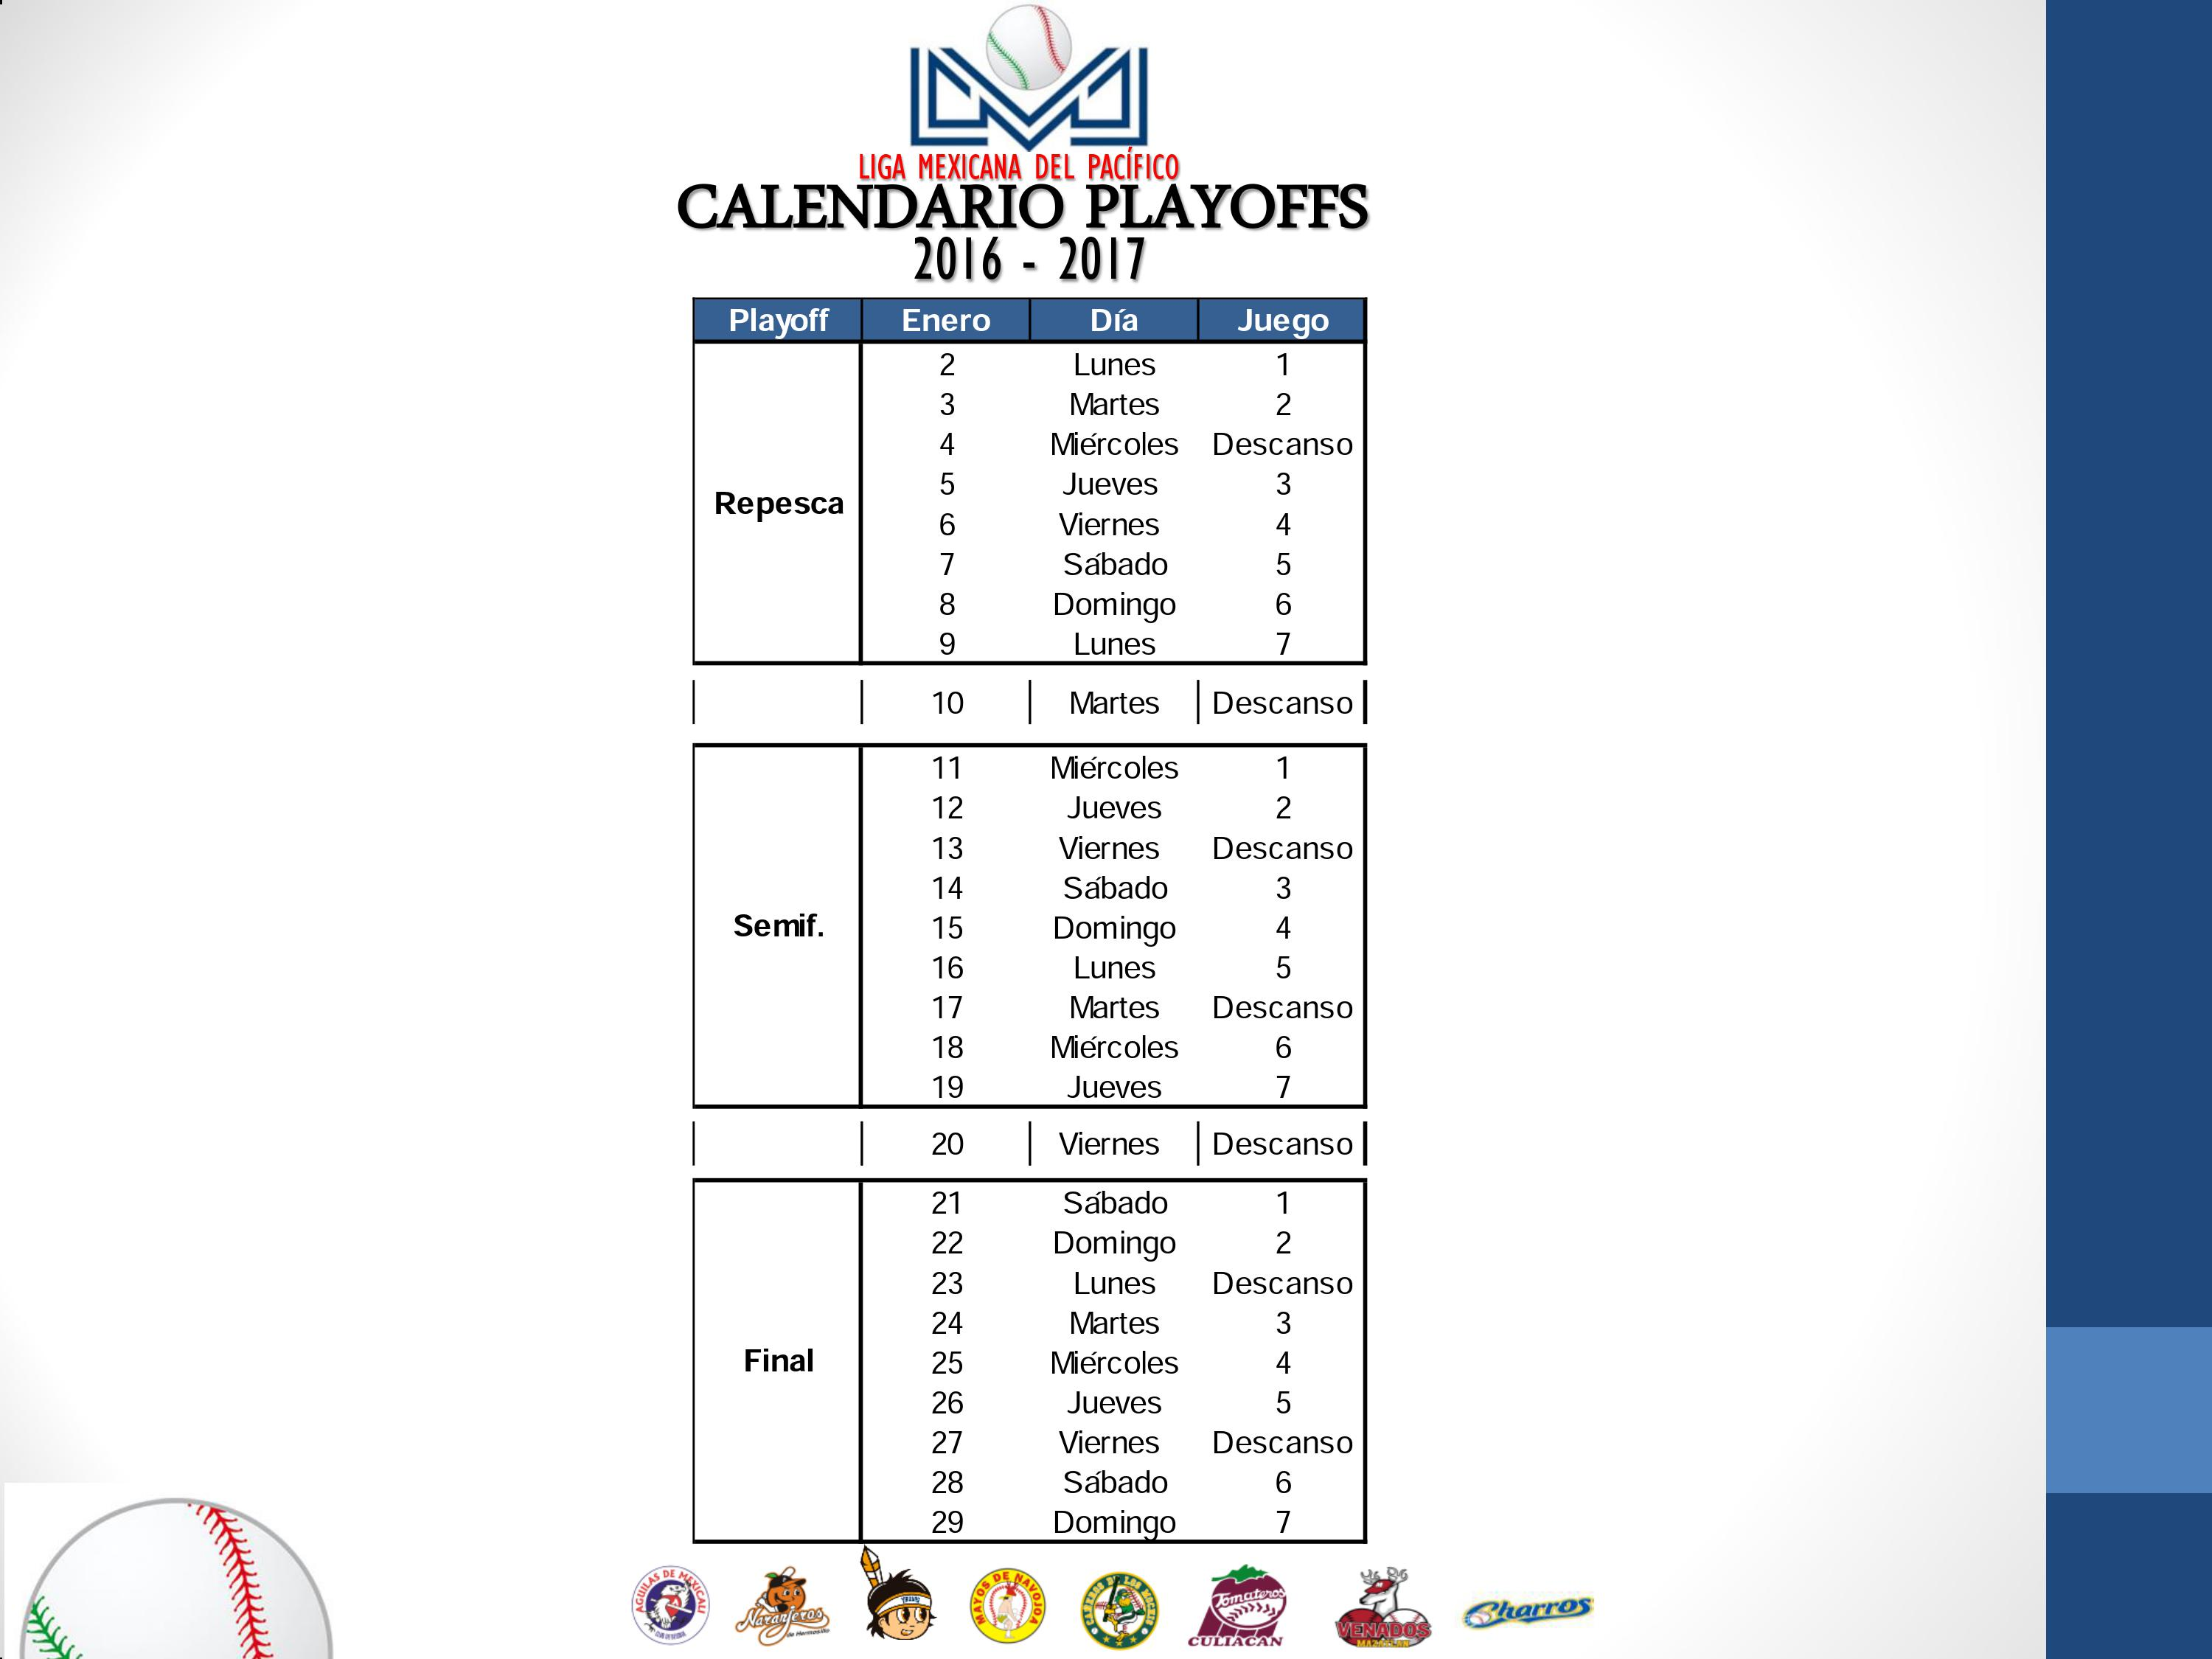 Calendario Play Off.Se Revela El Calendario De Playoffs Serpentineros